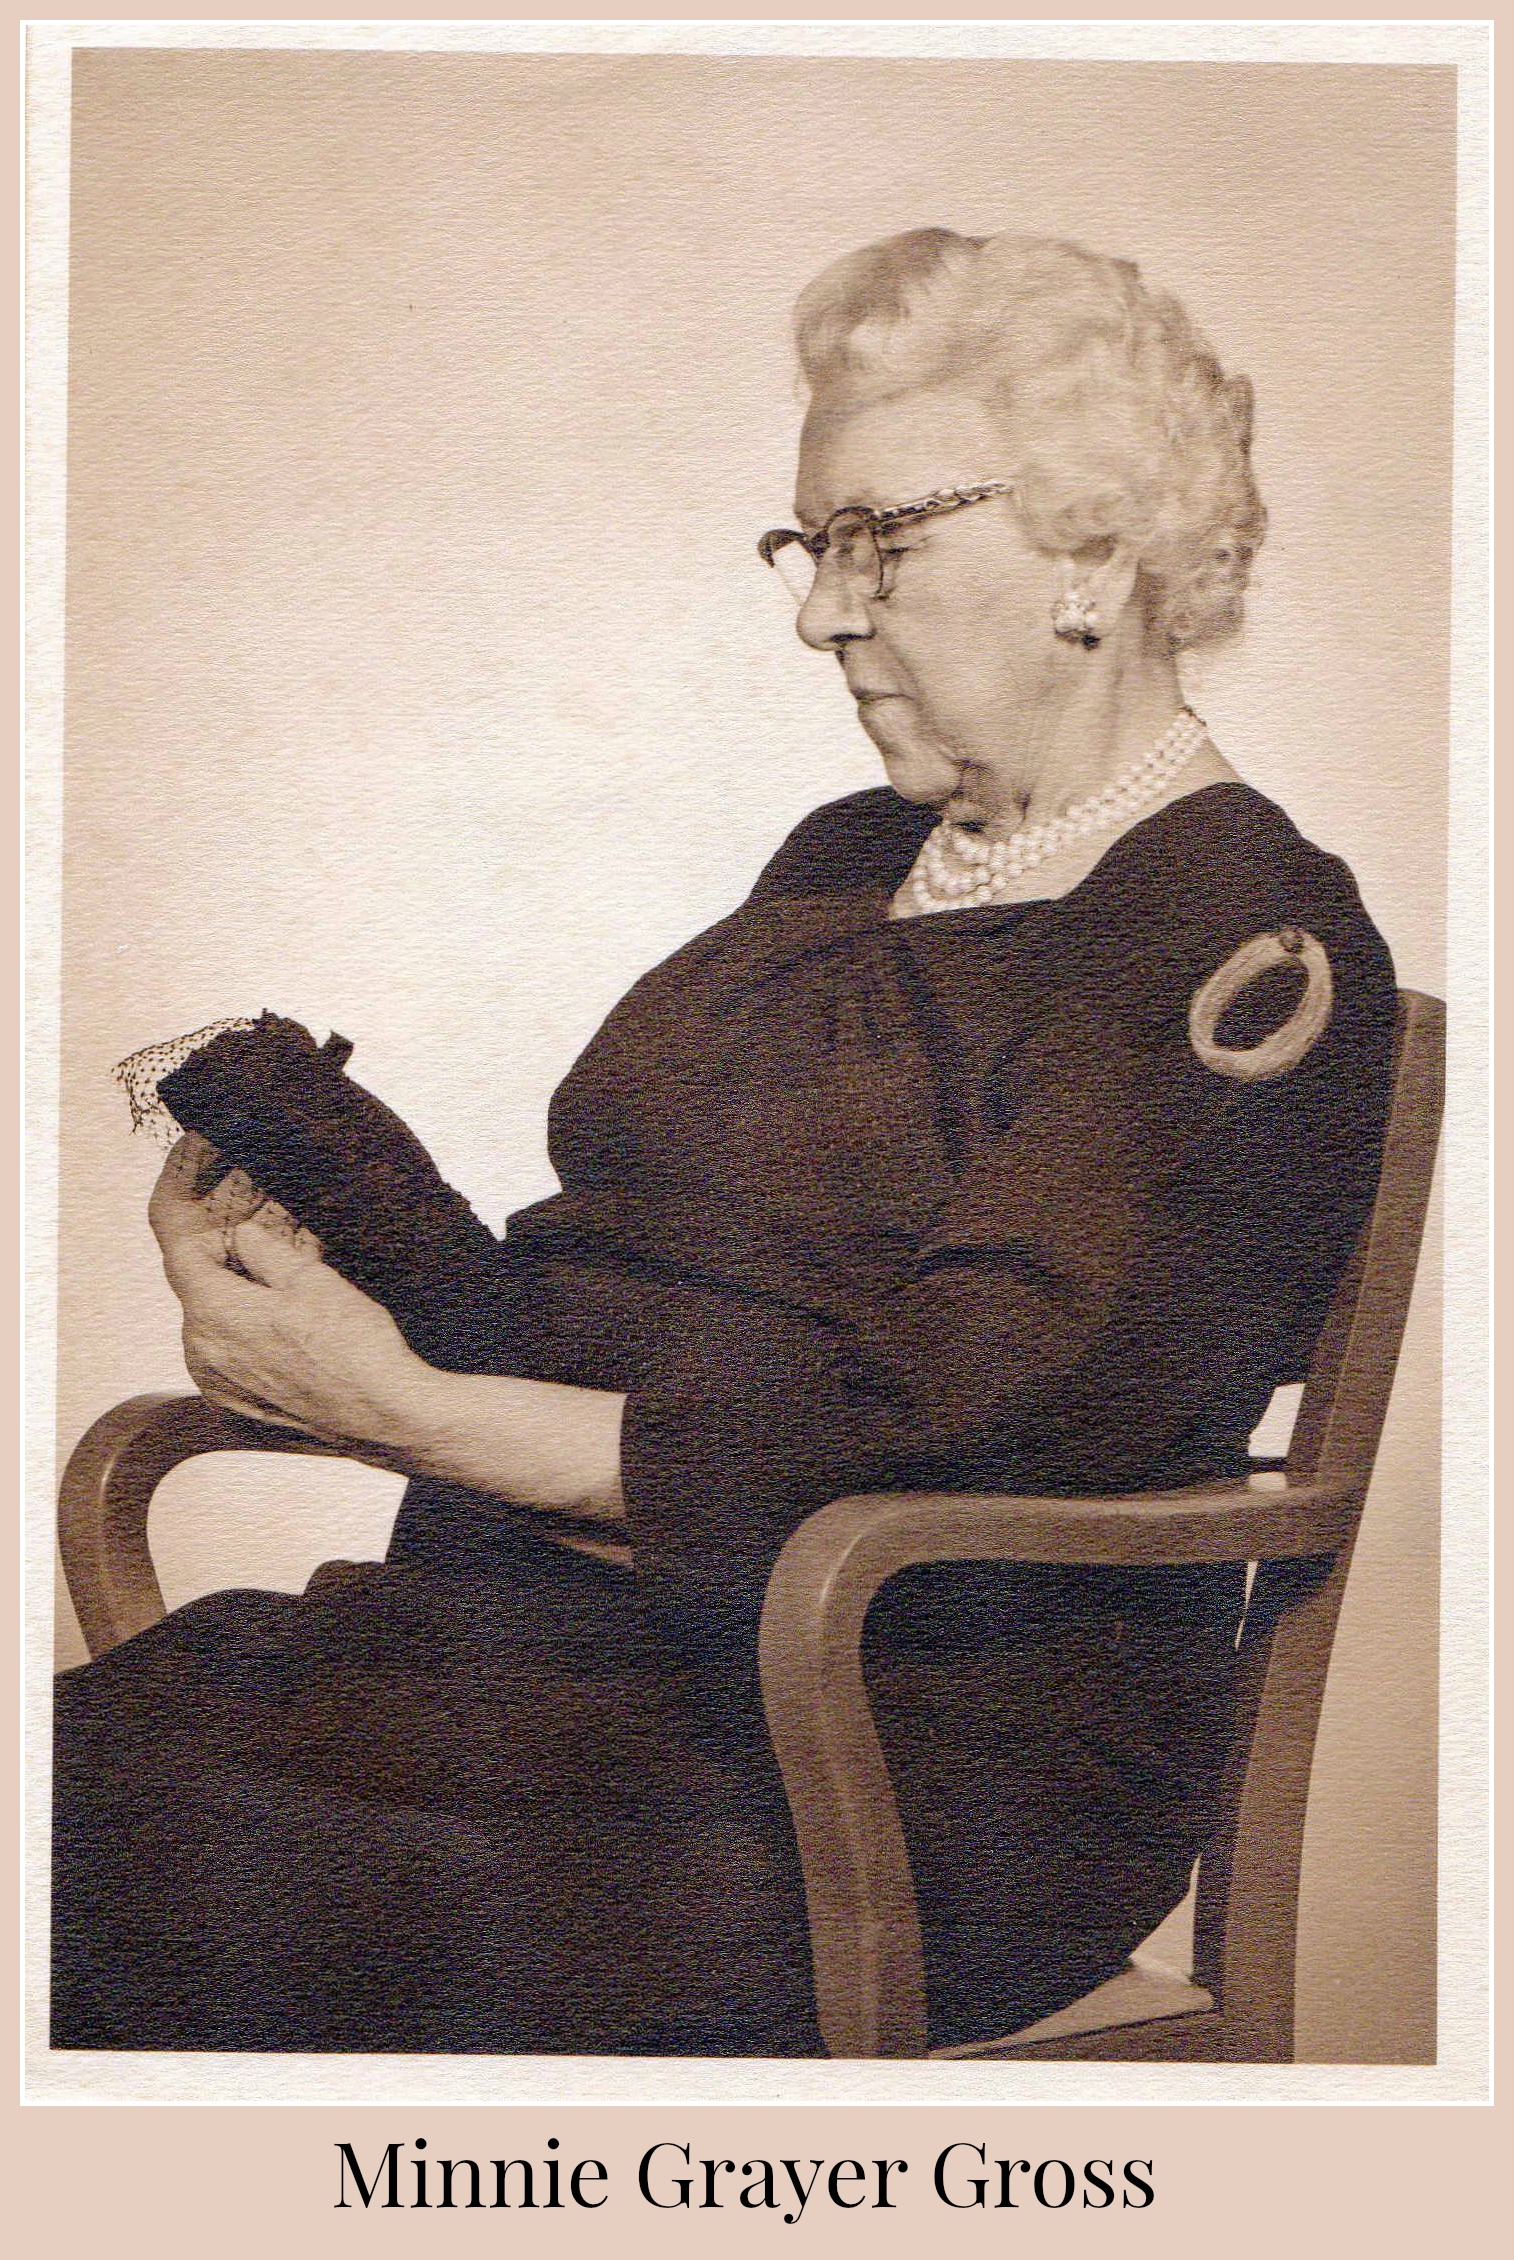 Minnie Grayer Gross portrait.jpg